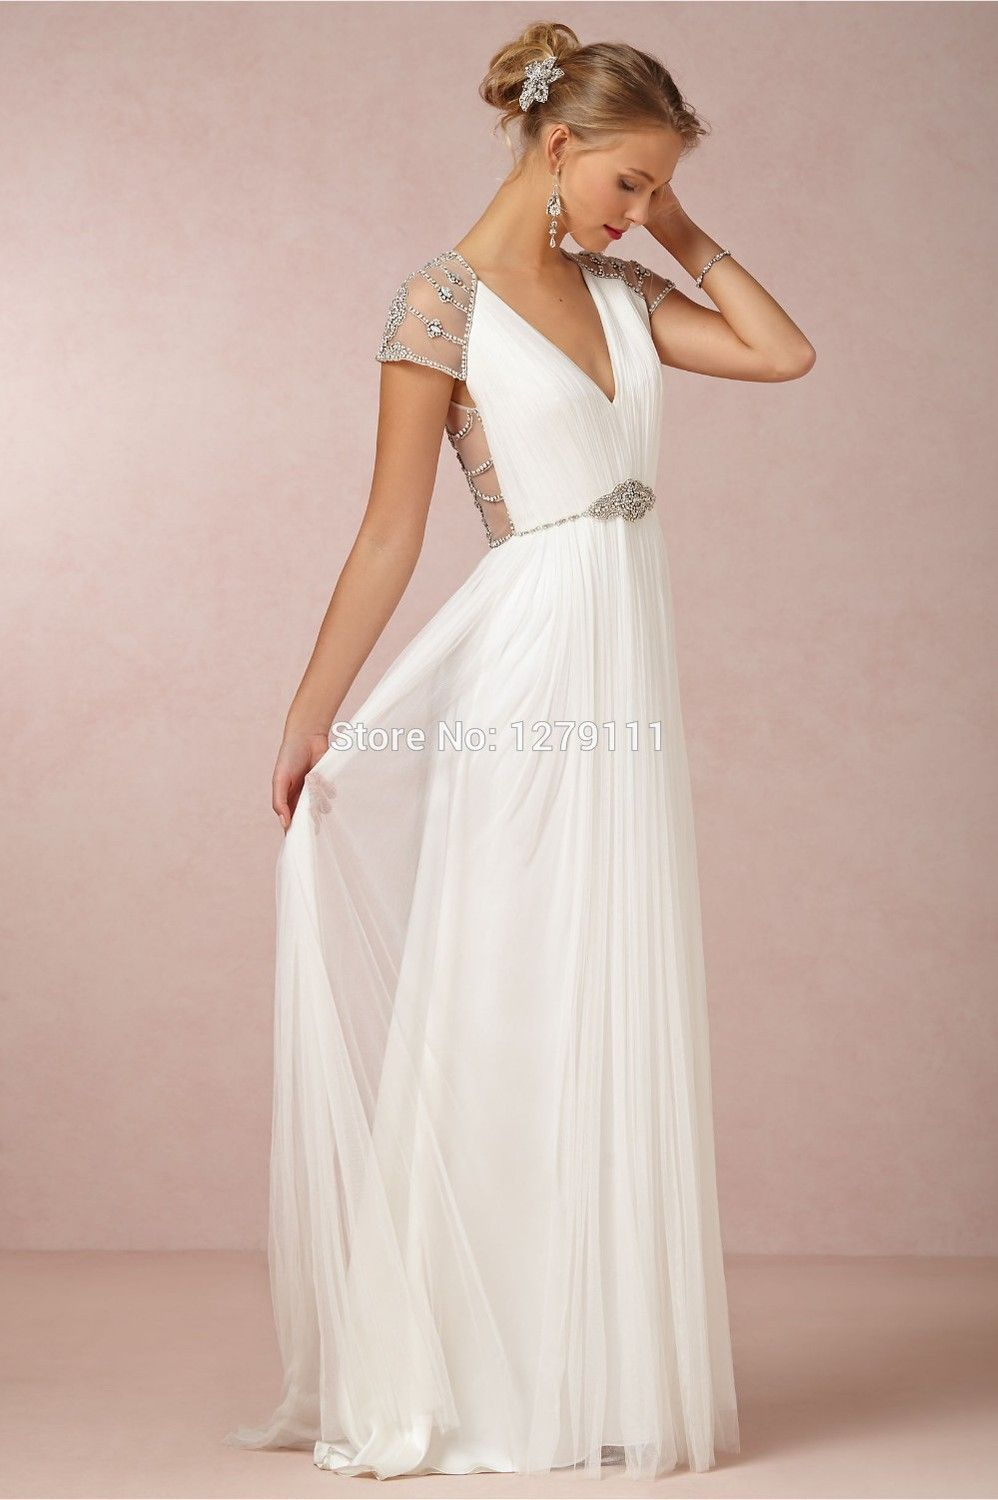 Cheap dress design wedding, Buy Quality wedding dresses with tulle skirt directly from China dress spring wedding Suppliers: About UsWe are reliable business partner for you! Wehave been involved in bridal industry for more than 10 years.